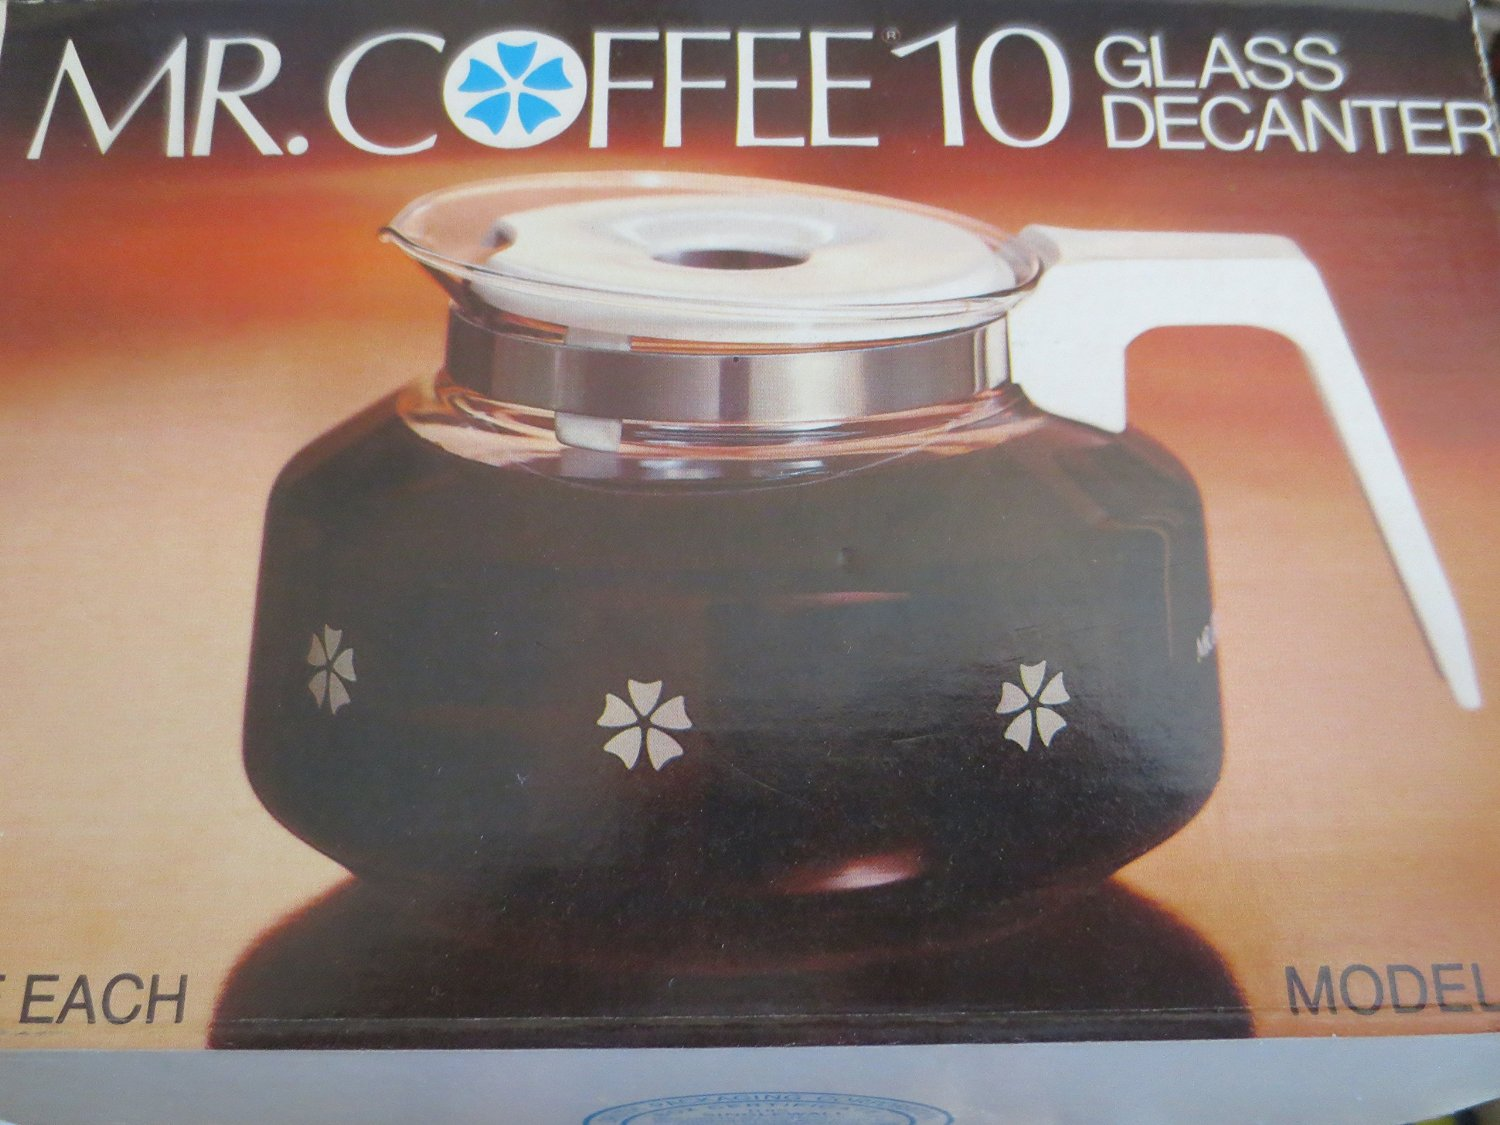 Mr Coffee - 10 Cup Glass Decanter Carafe Model D-7